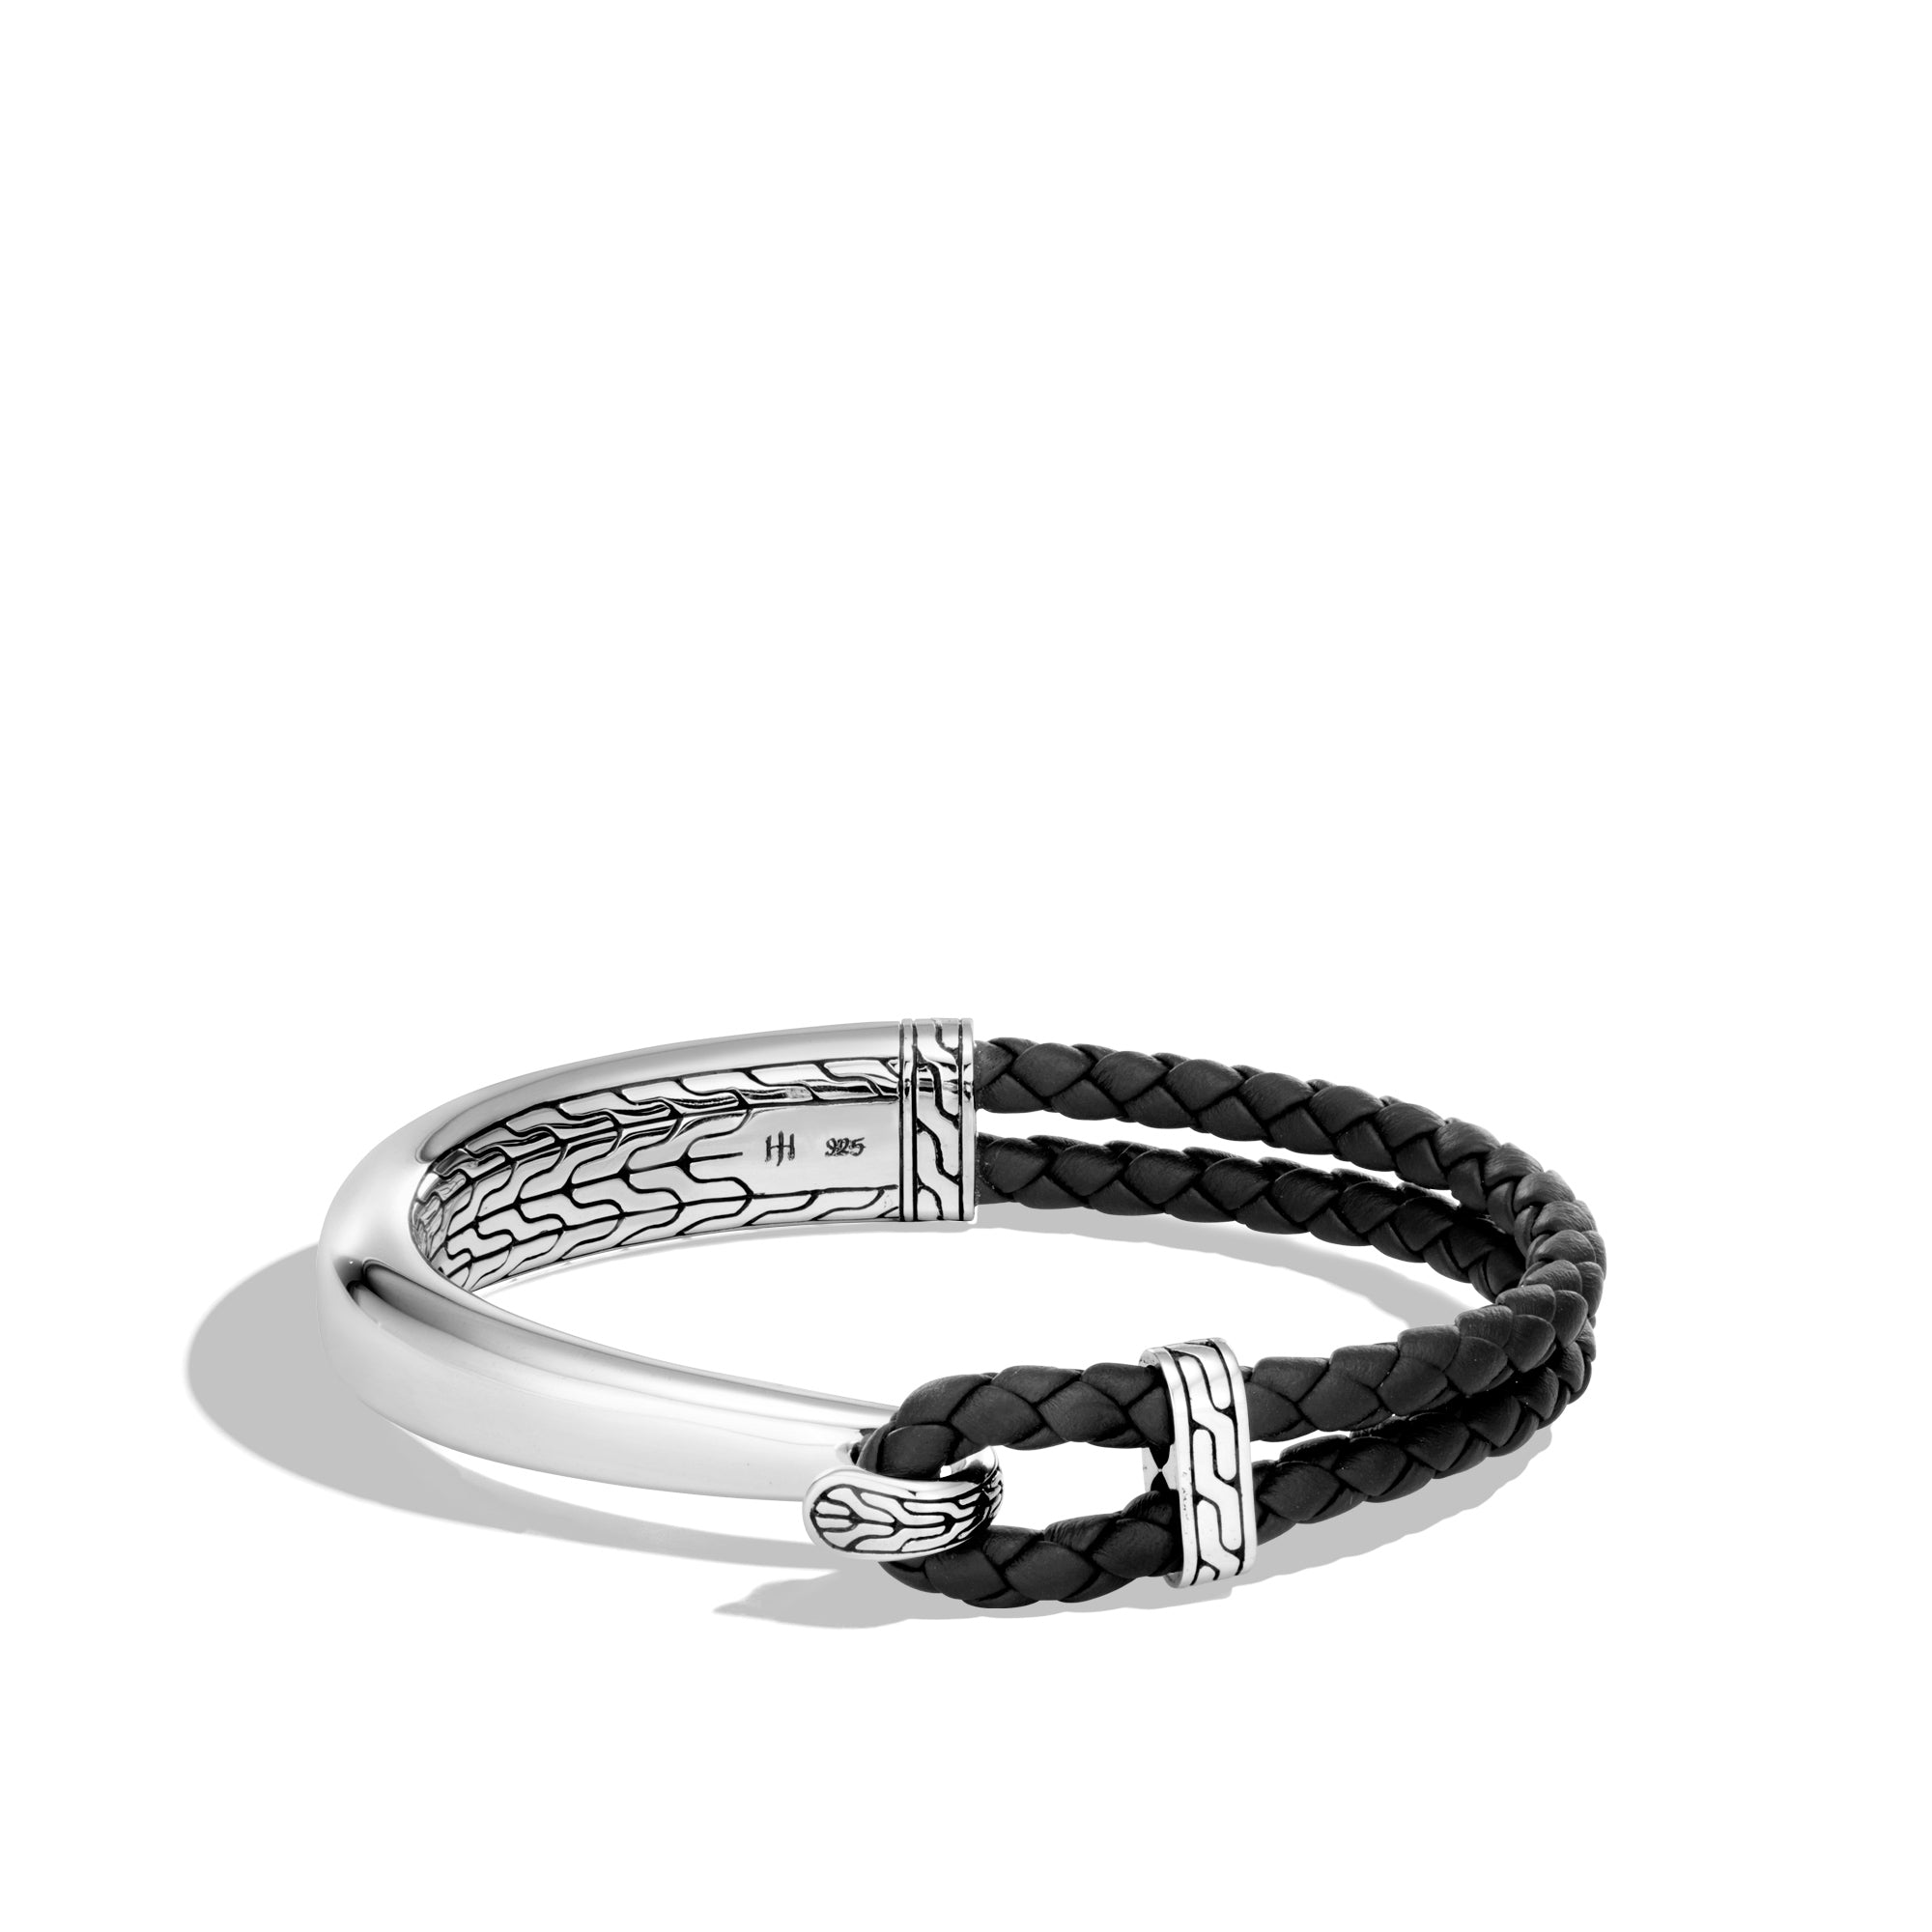 Classic Chain Silver Half Cuff Bracelet on Black Woven Leather with Hook Clasp